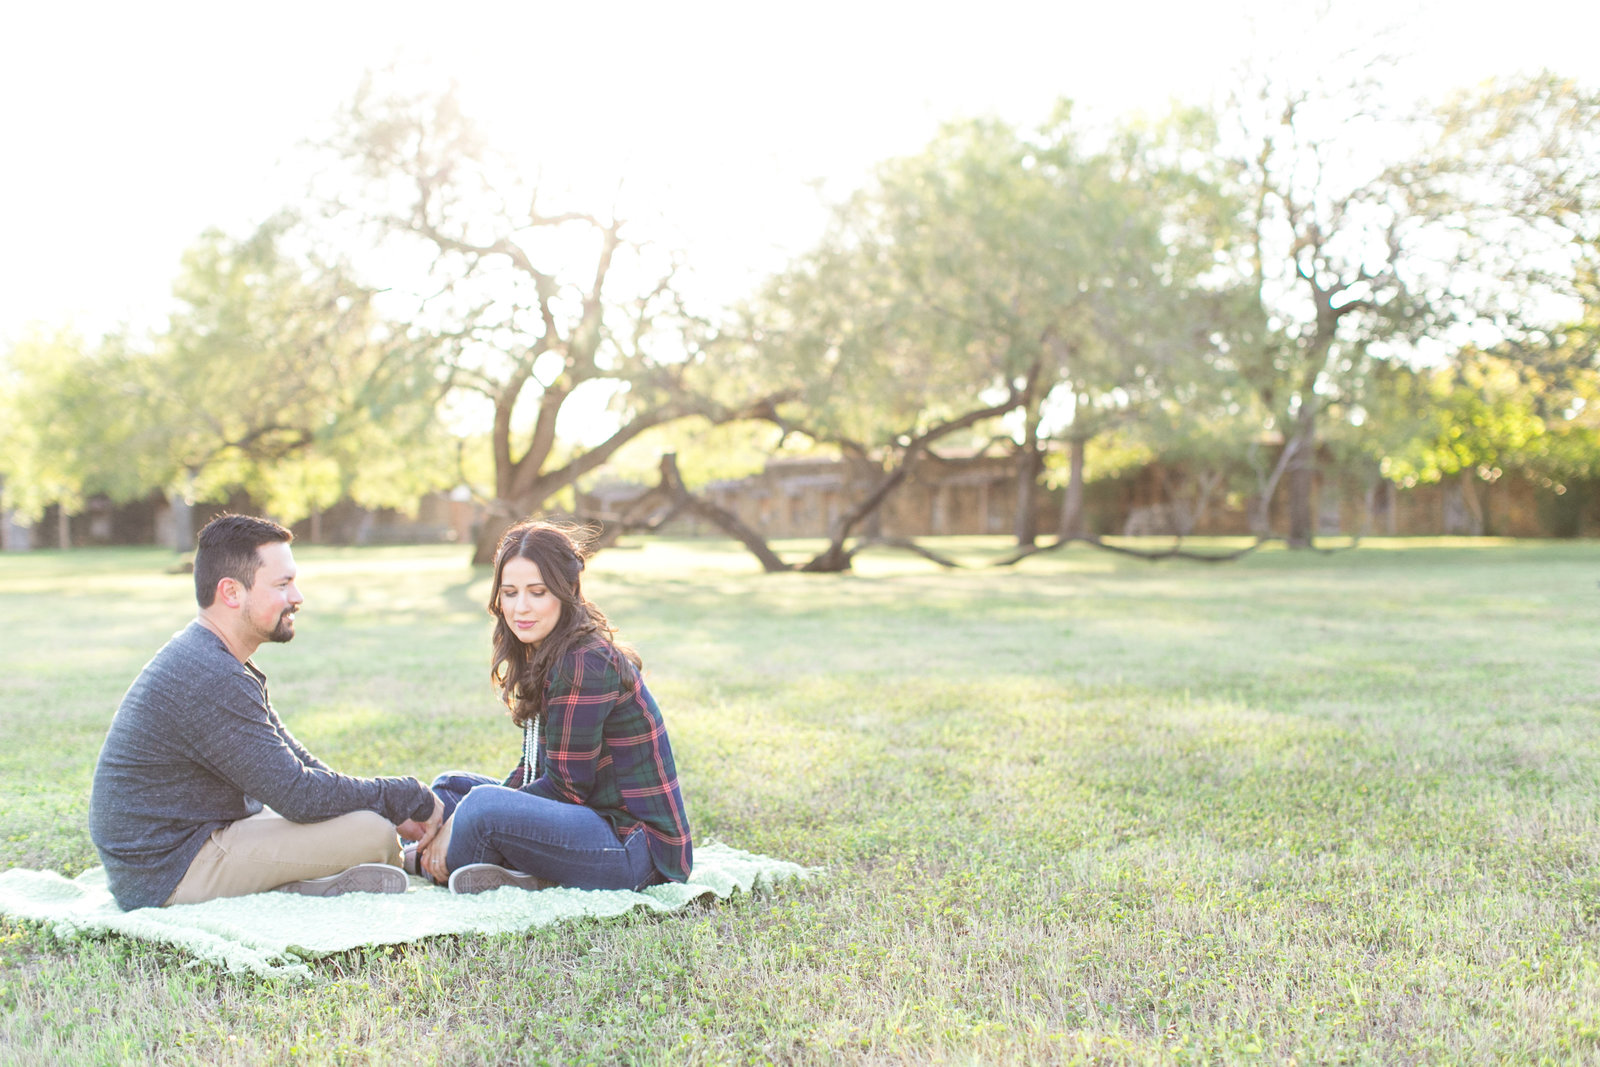 san-antonio-missions-san-jose-texas-engagement-session-photo-63